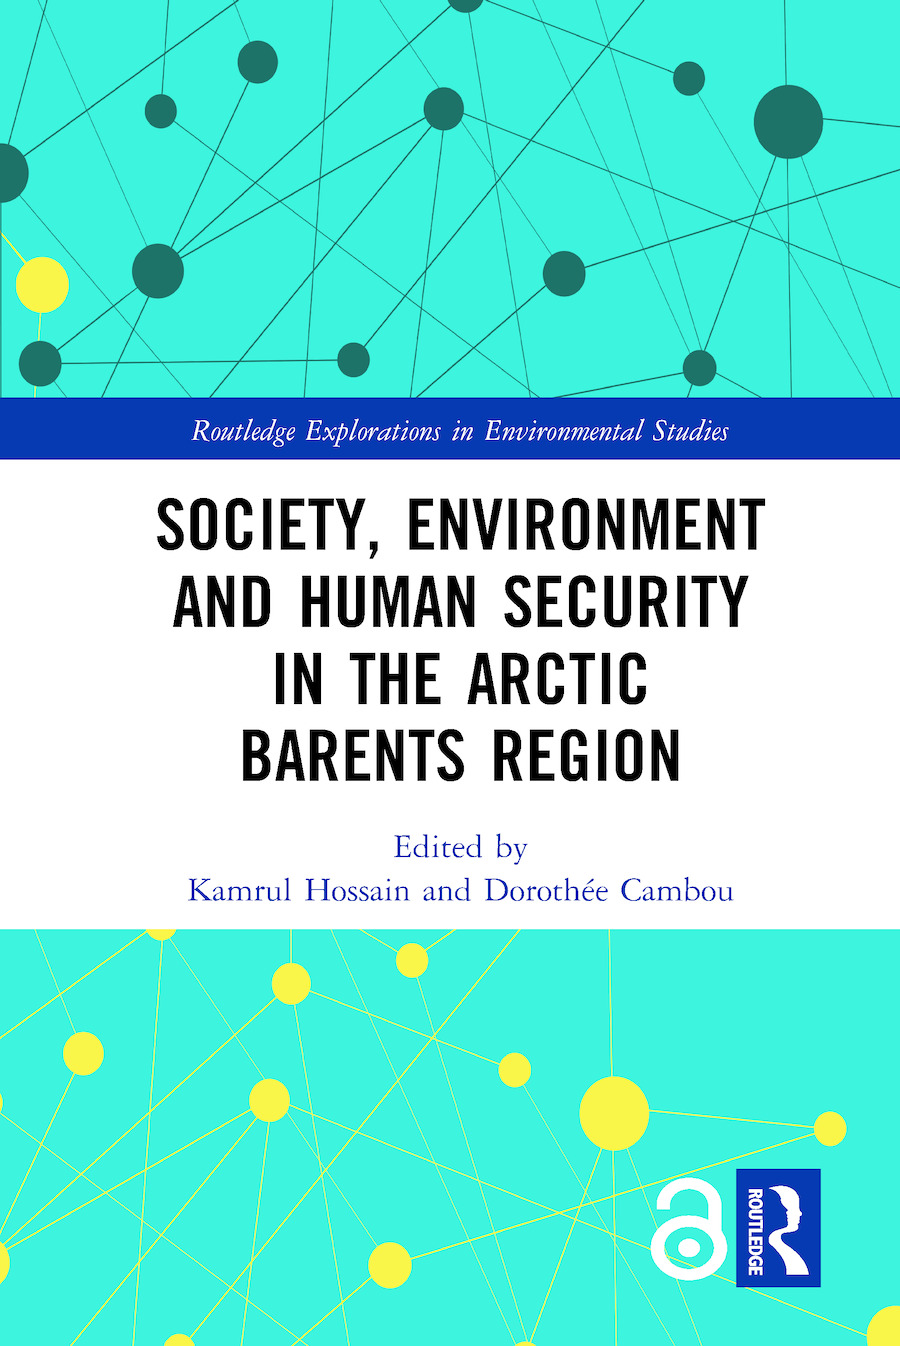 Society, Environment and Human Security in the Arctic Barents Region book cover